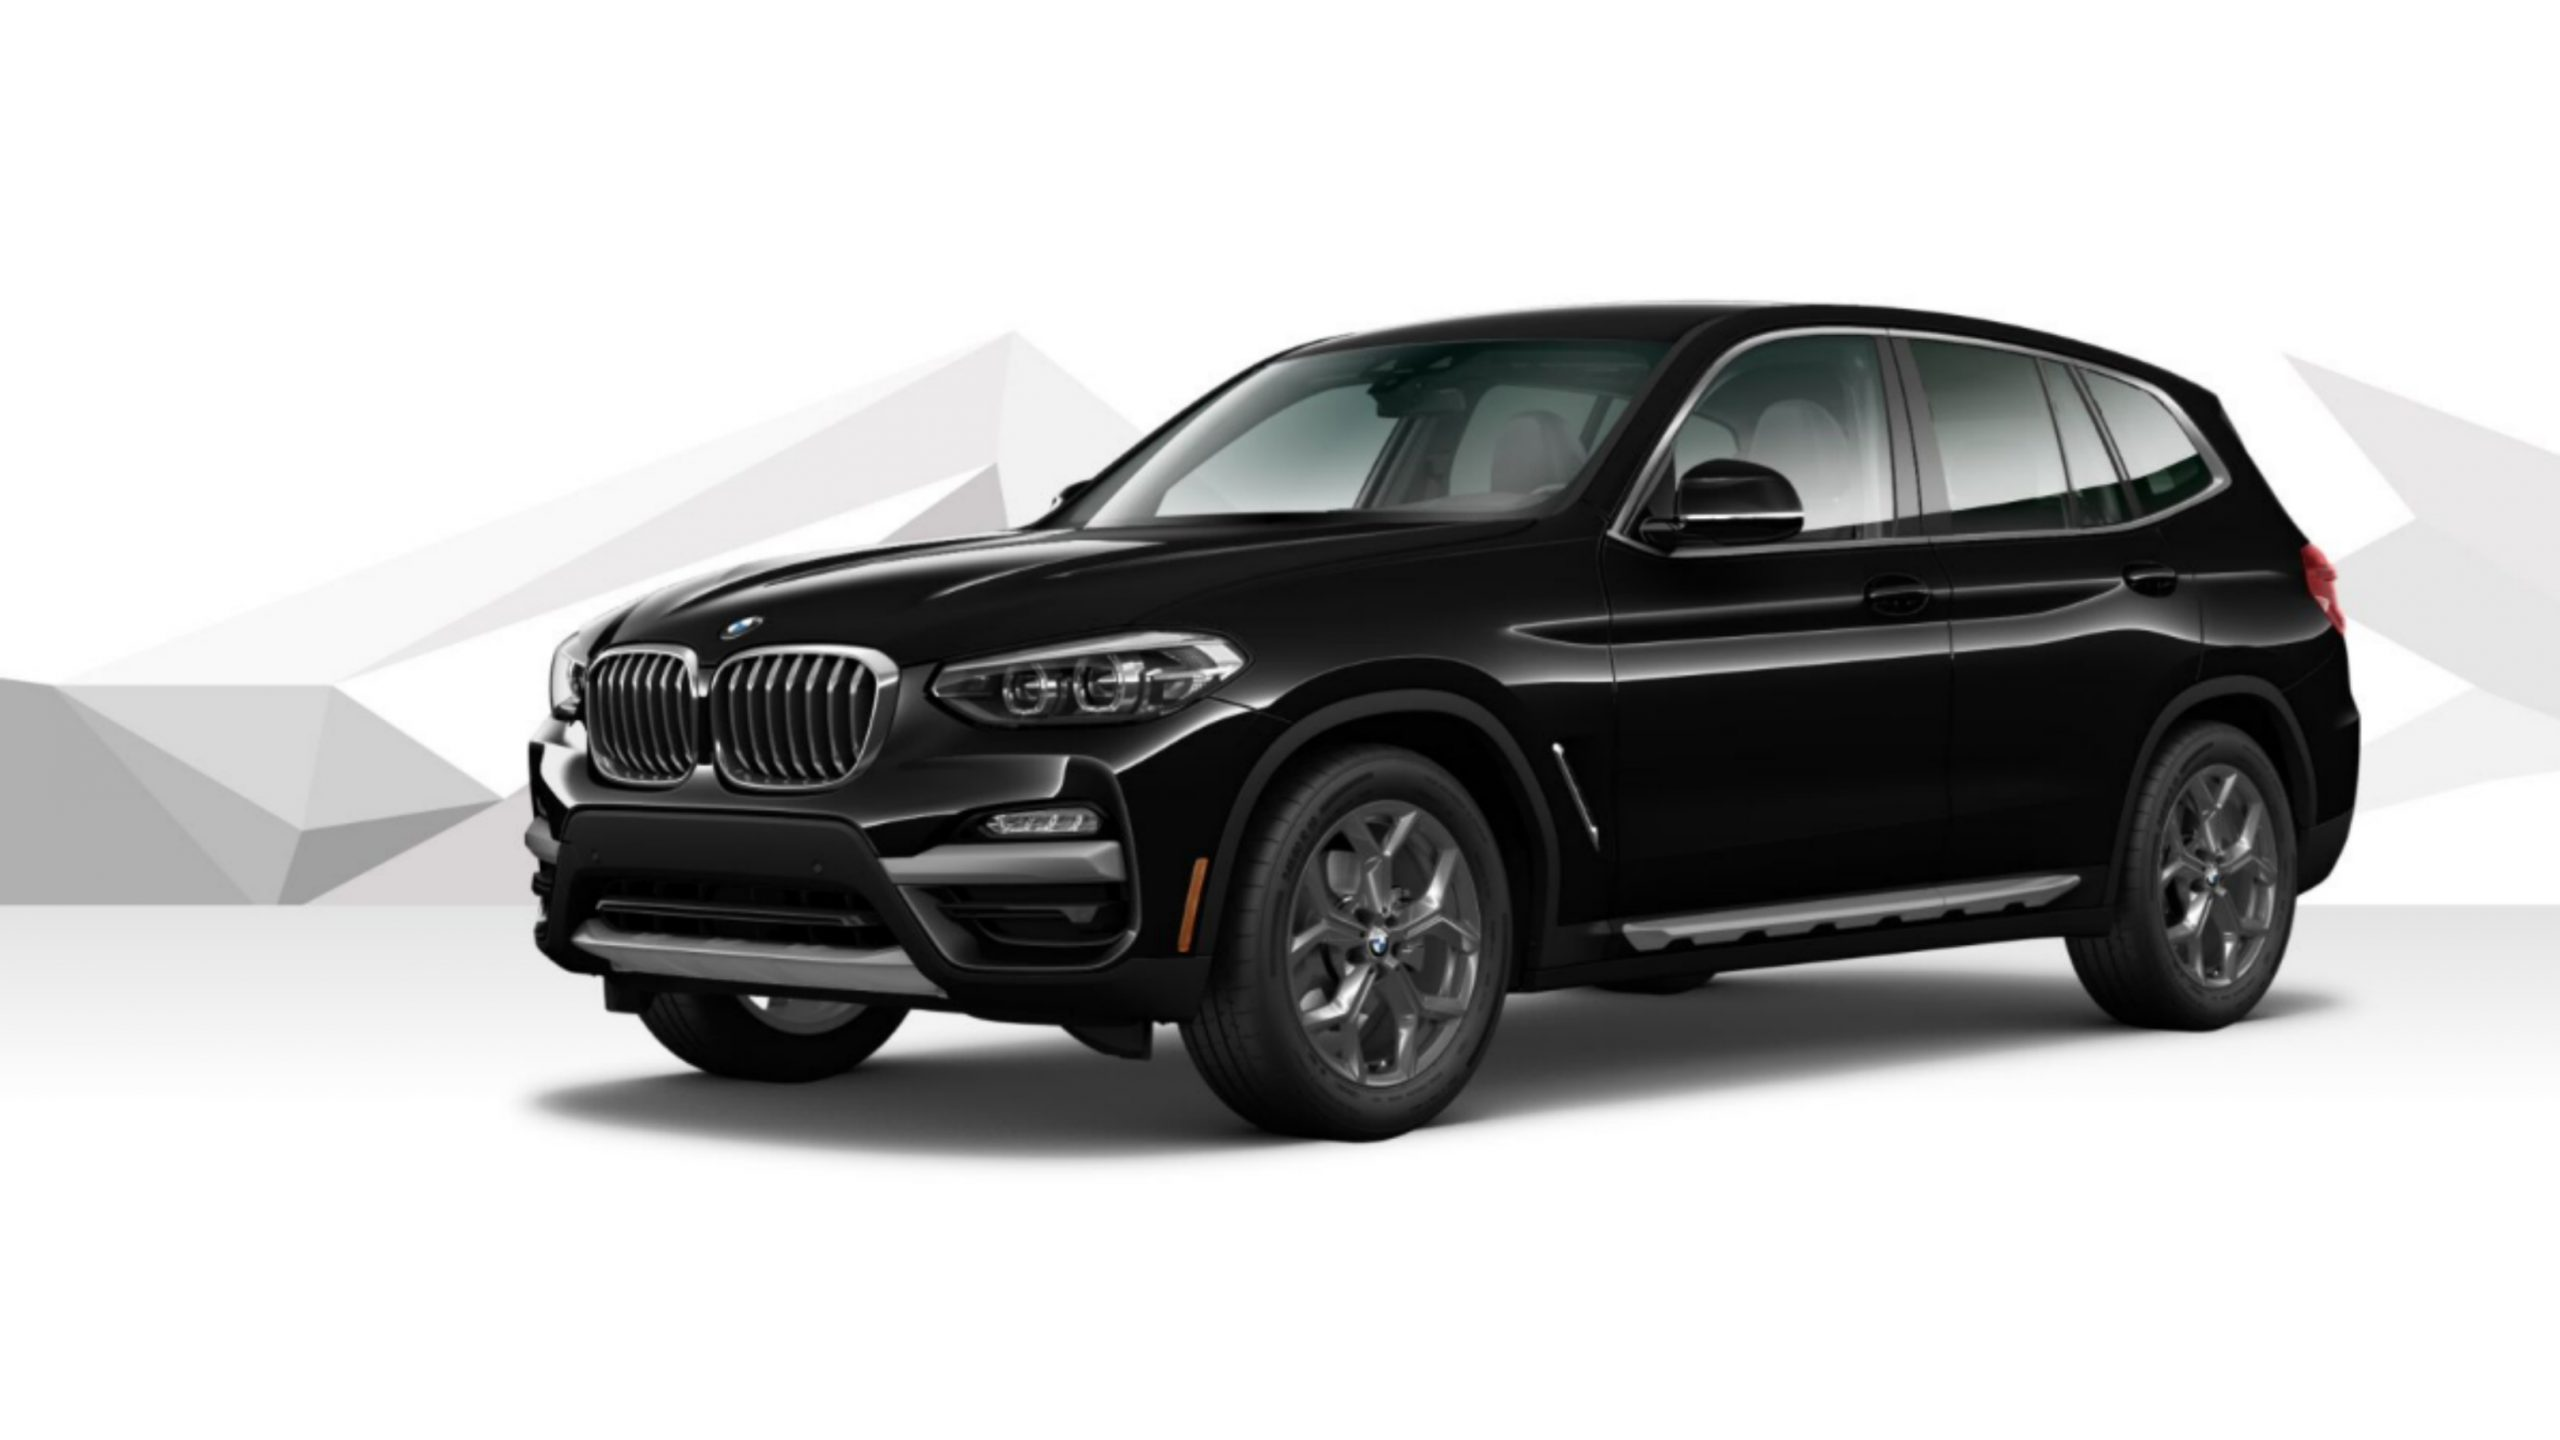 Base Camp: 2020 BMW X3 xDrive30i